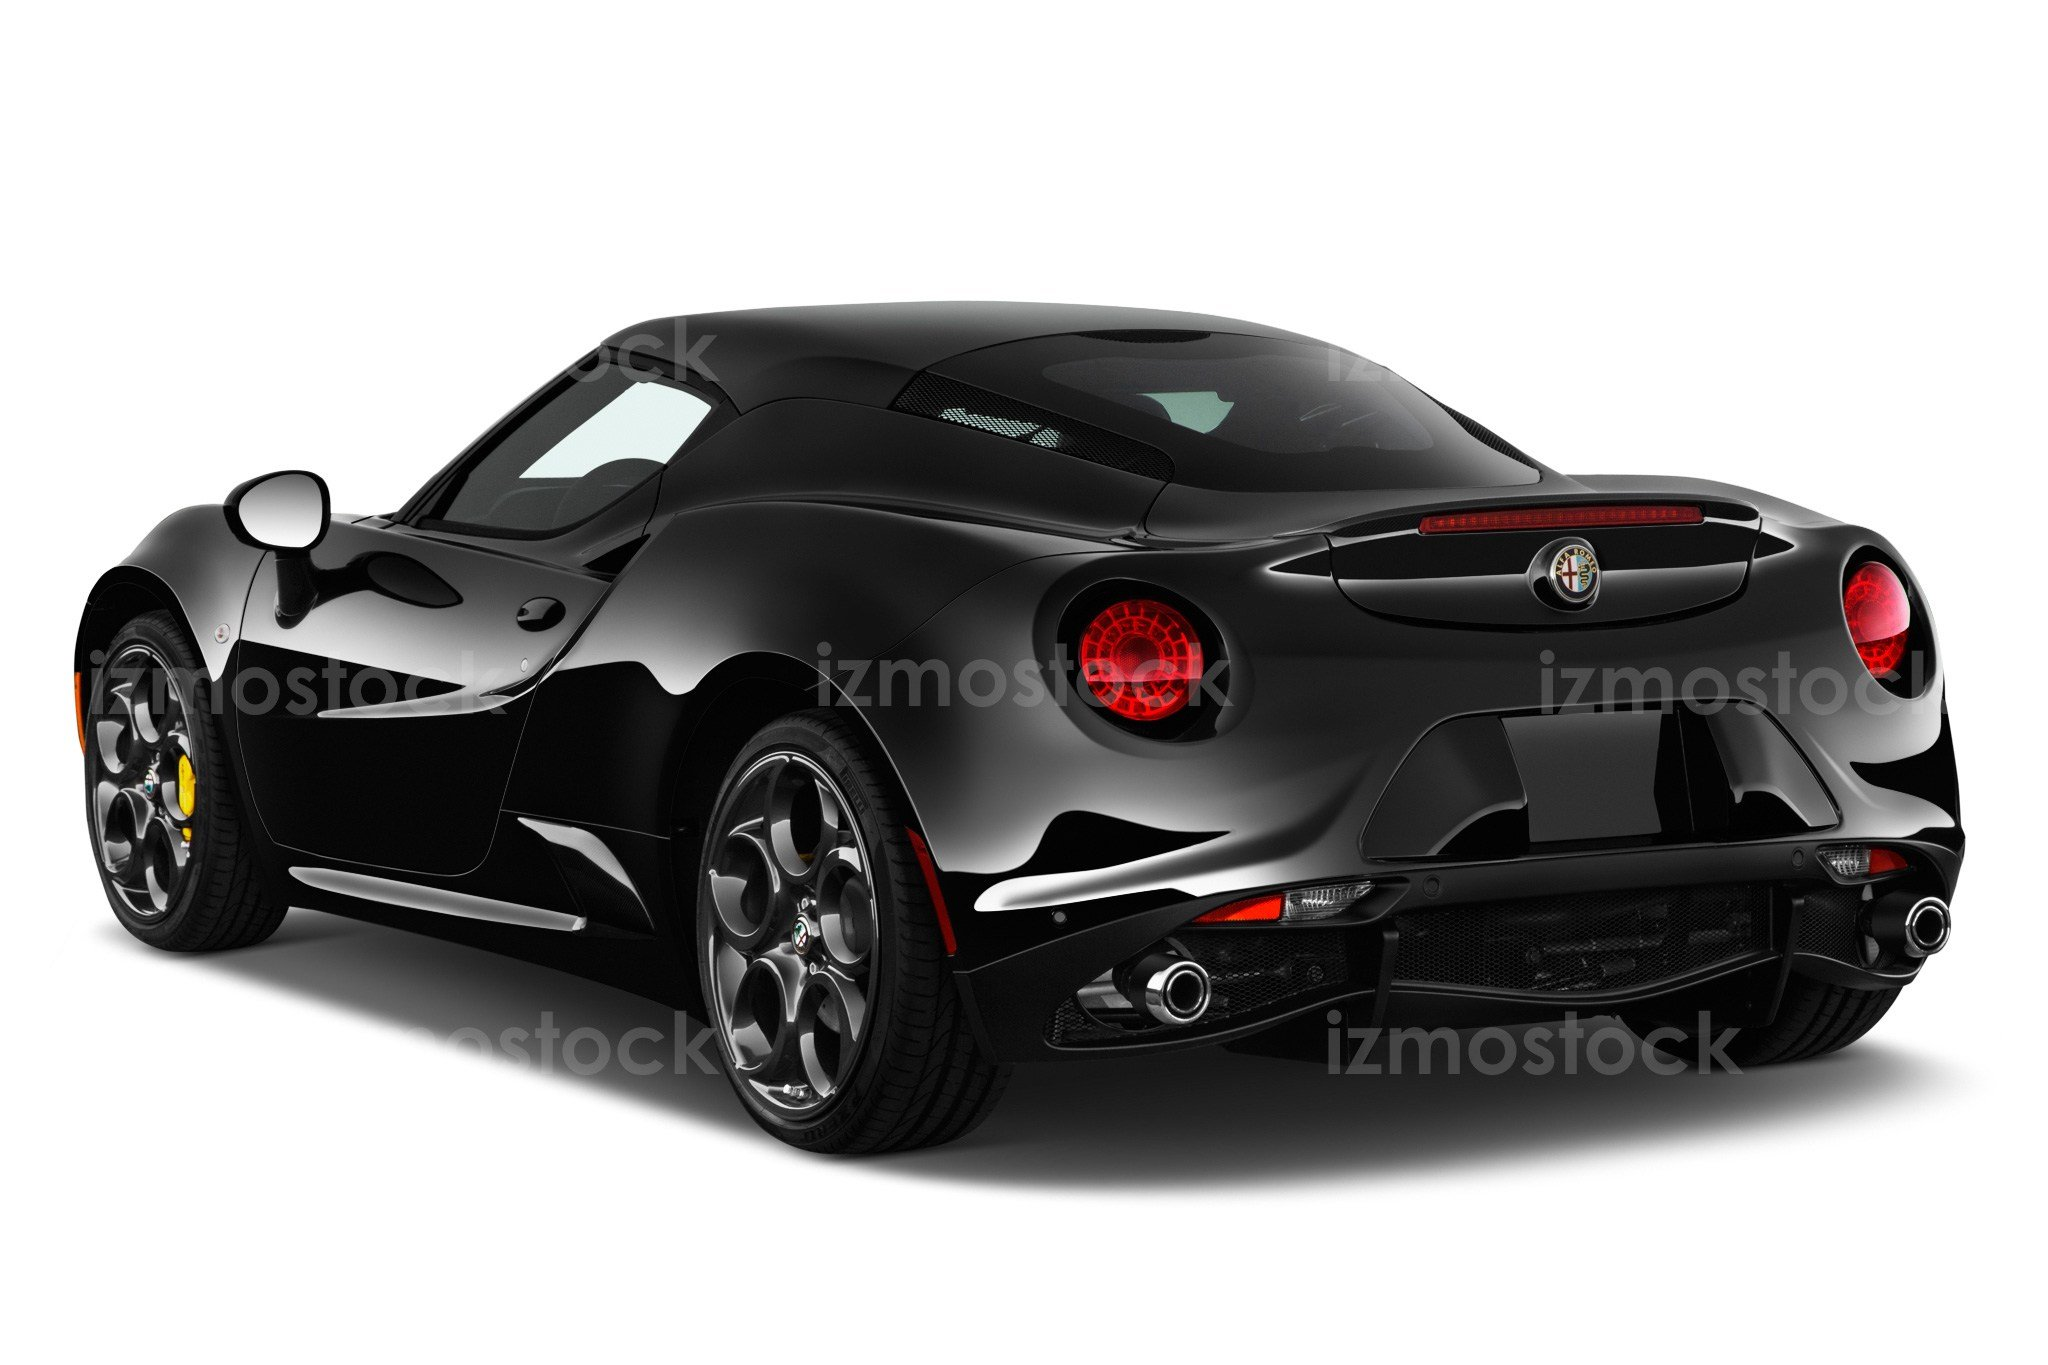 Latest 2016 Alfa Romeo 4C Coupe Affordable Track Ready Sports Car Free Download